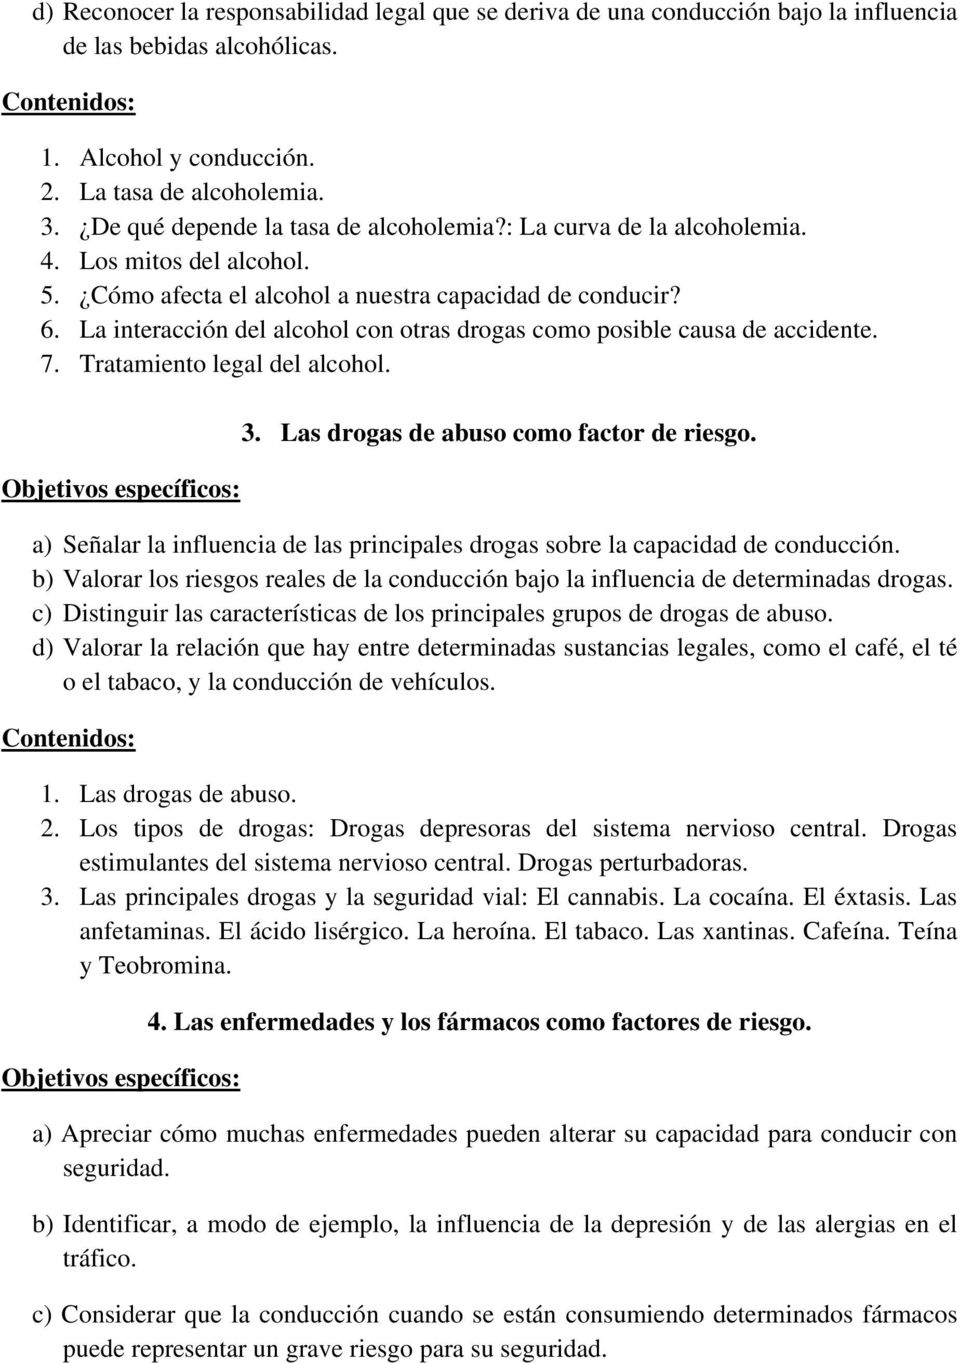 La interacción del alcohol con otras drogas como posible causa de accidente. 7. Tratamiento legal del alcohol. 3. Las drogas de abuso como factor de riesgo.